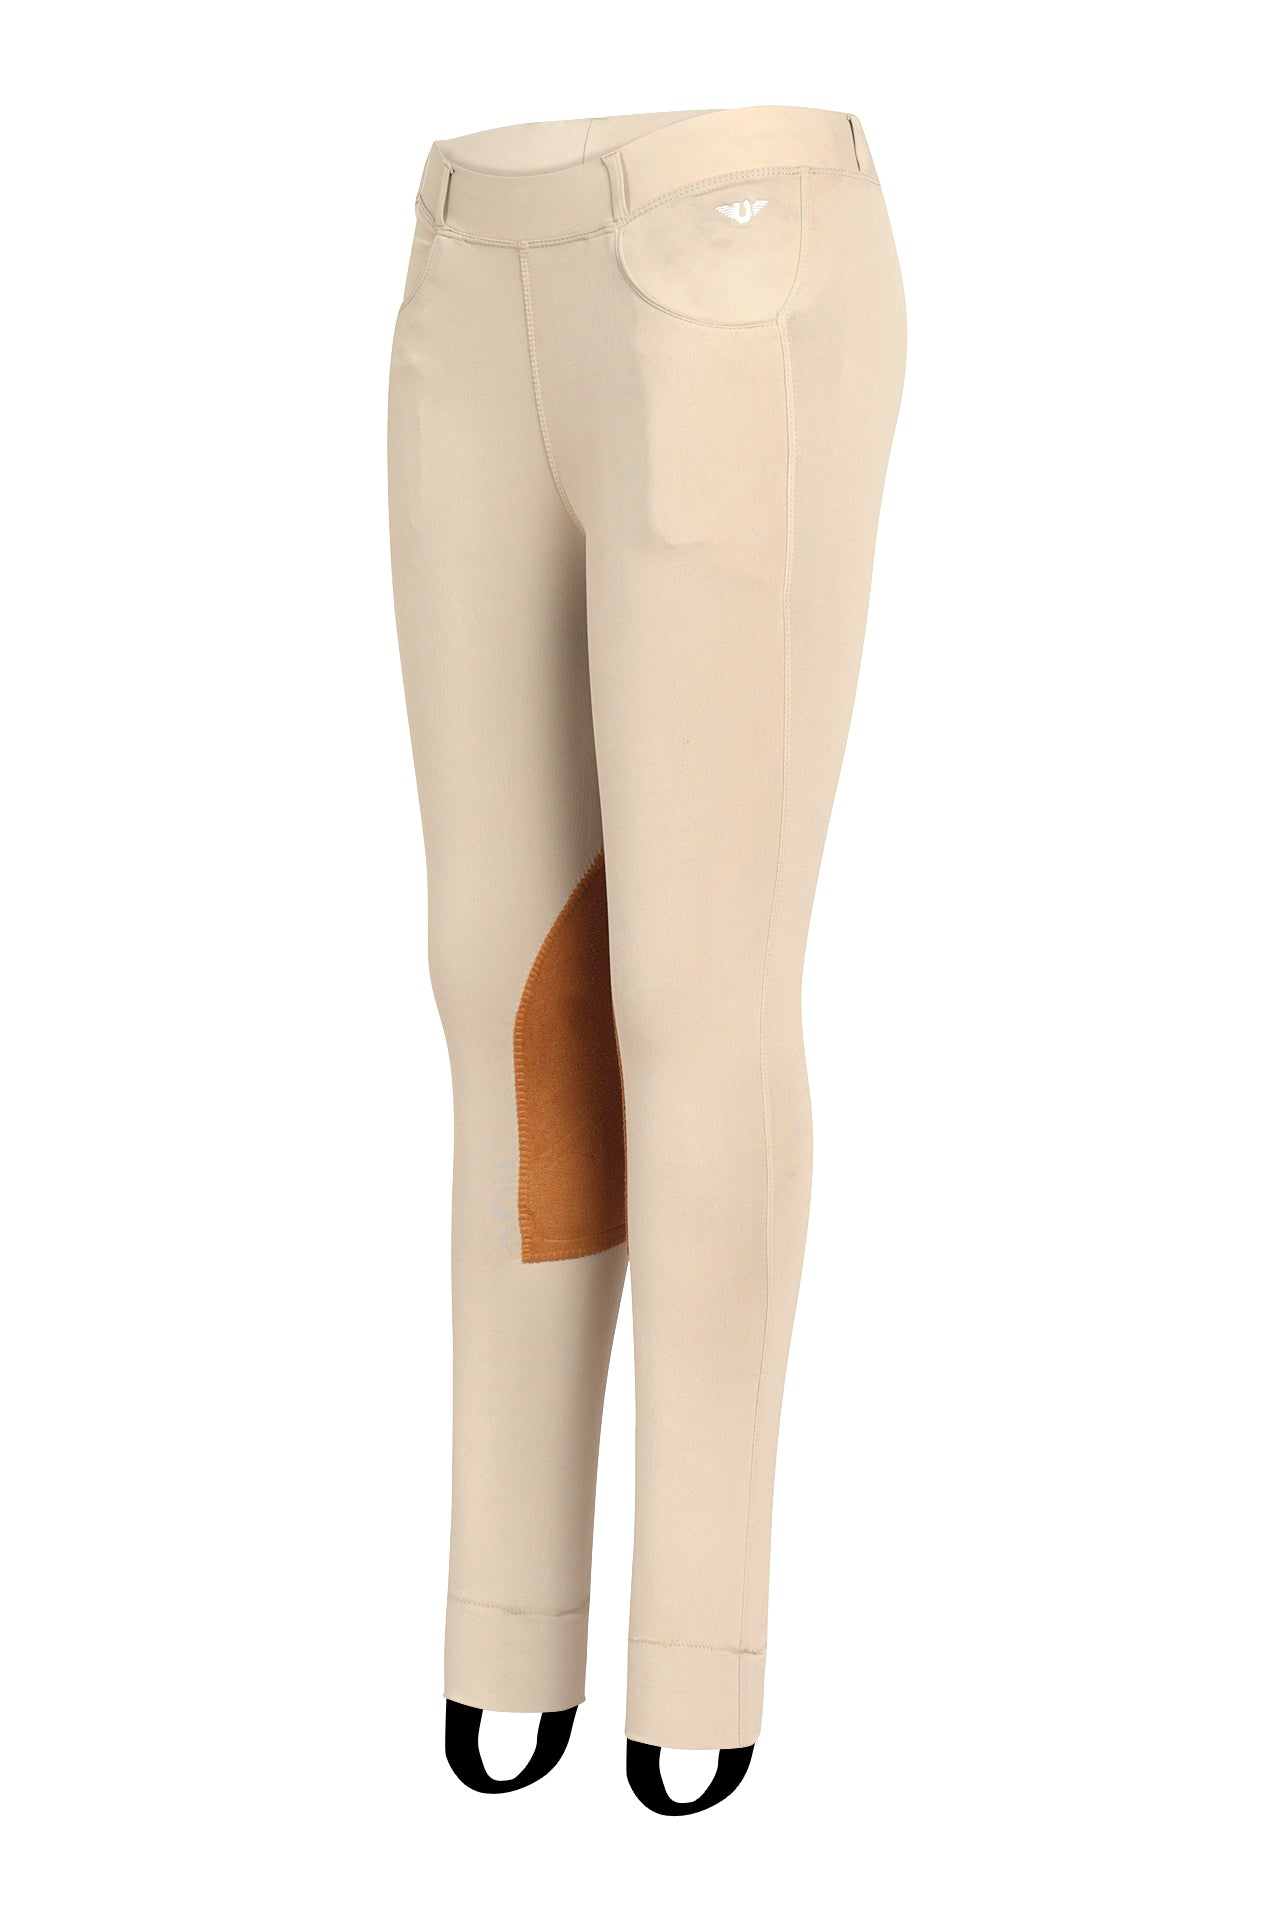 TUFFRIDER CHILDREN'S PRIME JODHPURS WITH BELT LOOPS_1